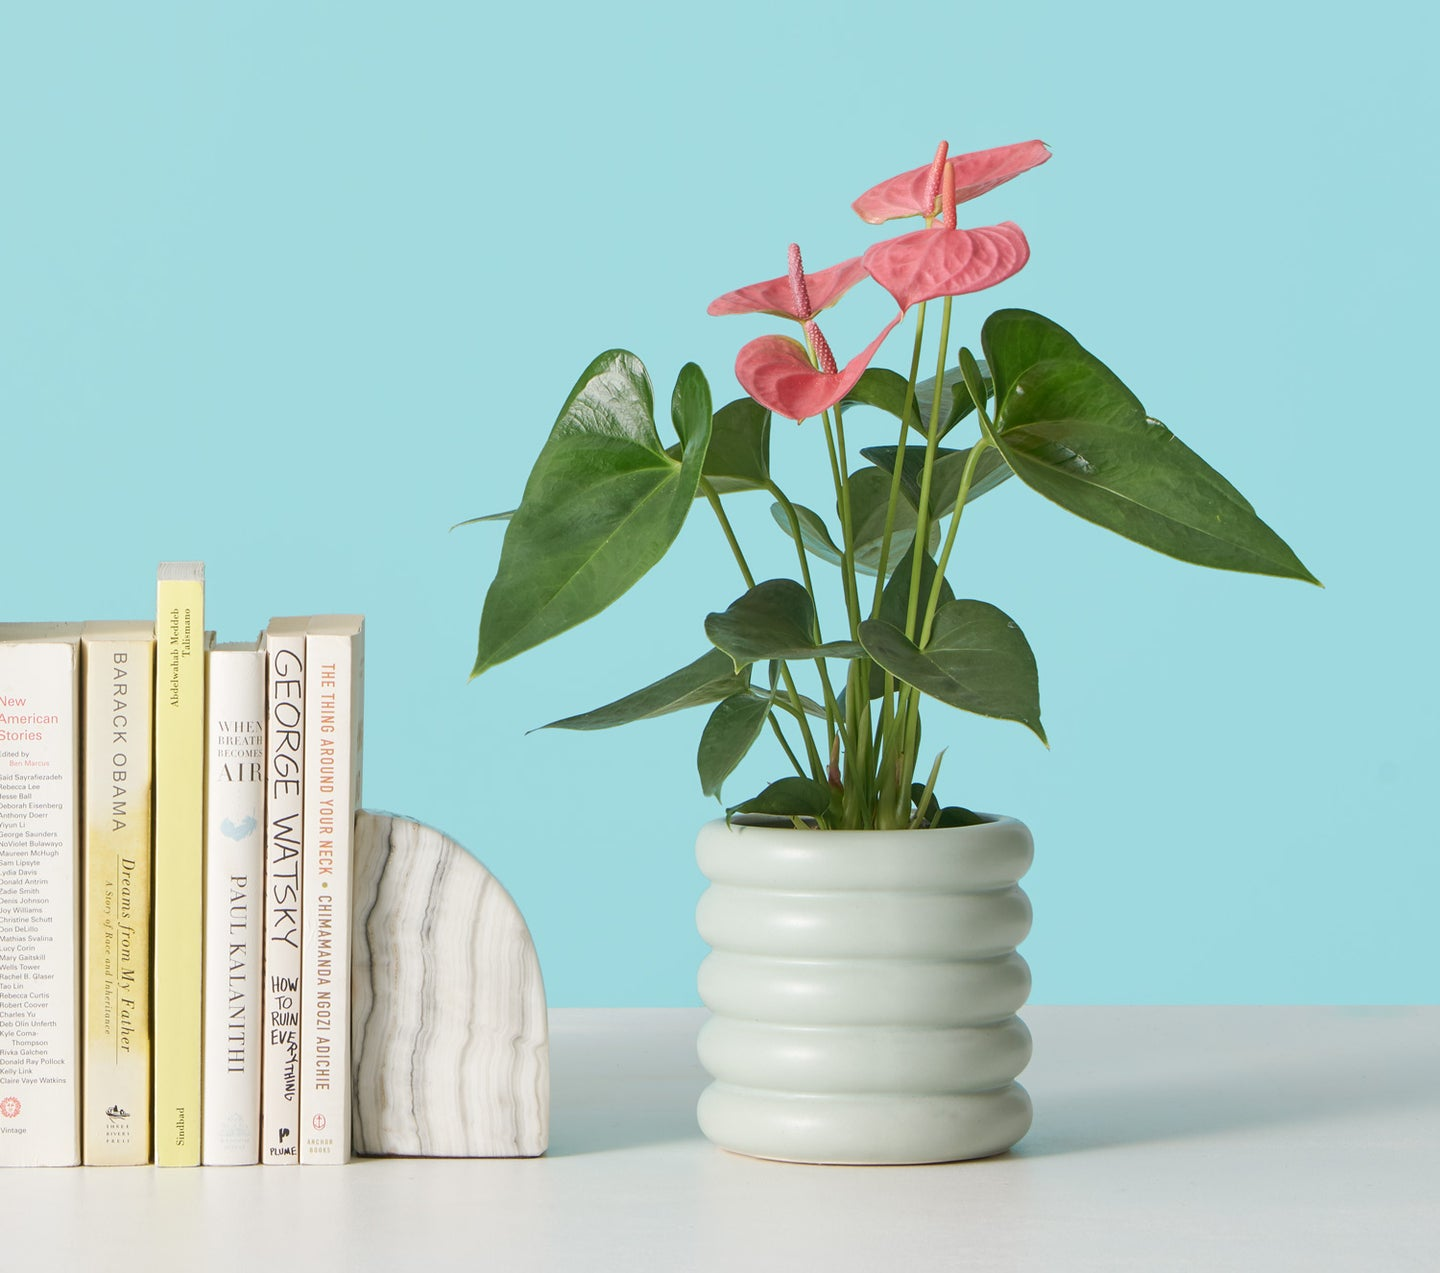 anthurium in blue ribbed pot next to books